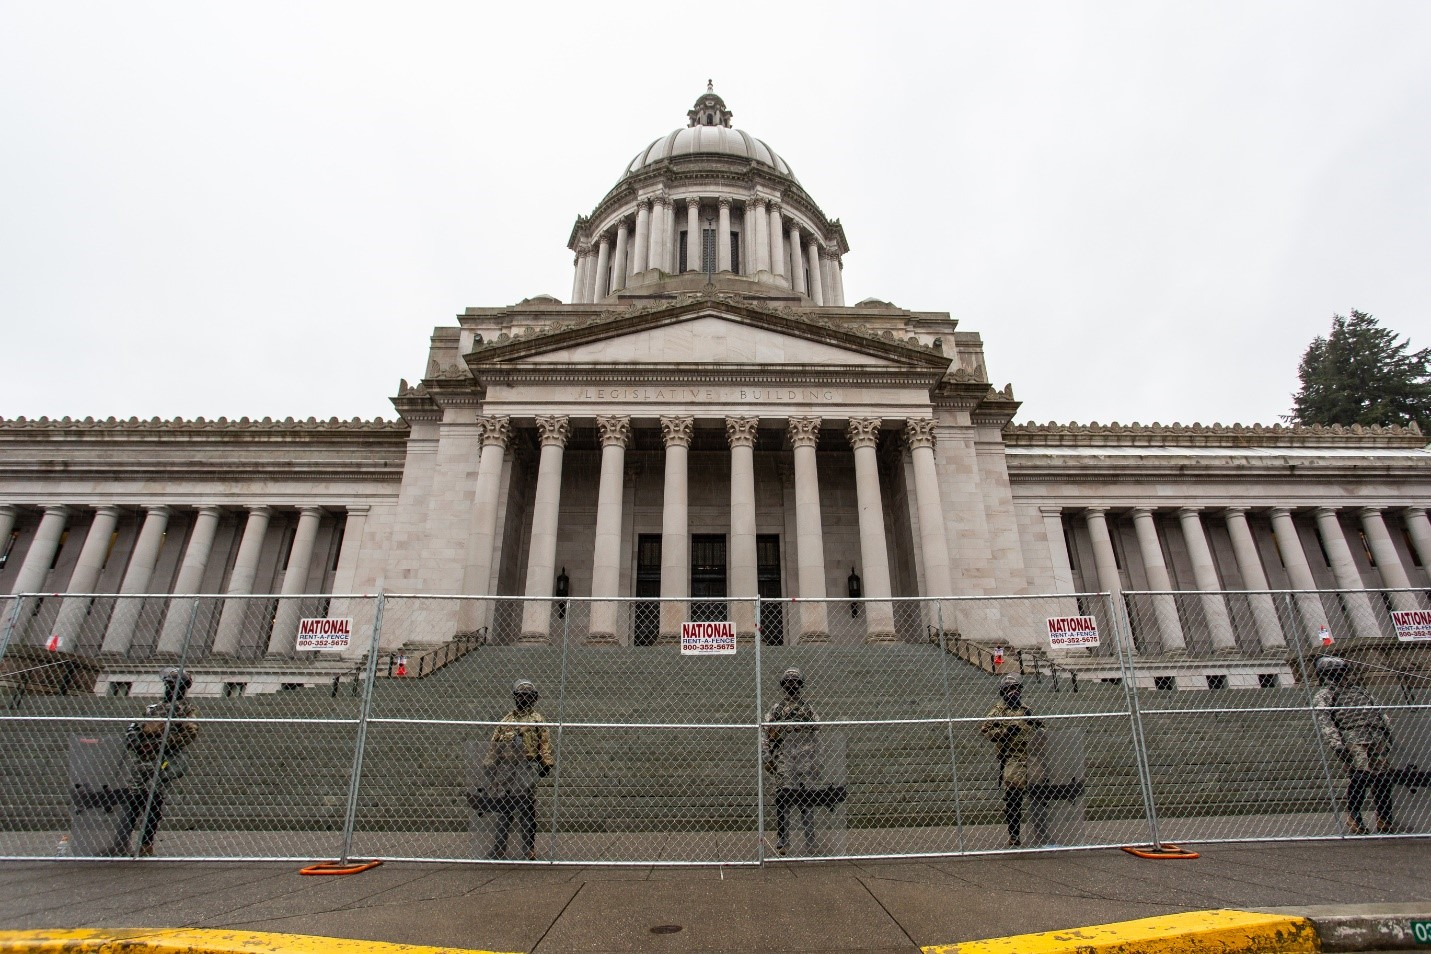 National Guard soldiers in front of the State Capitol